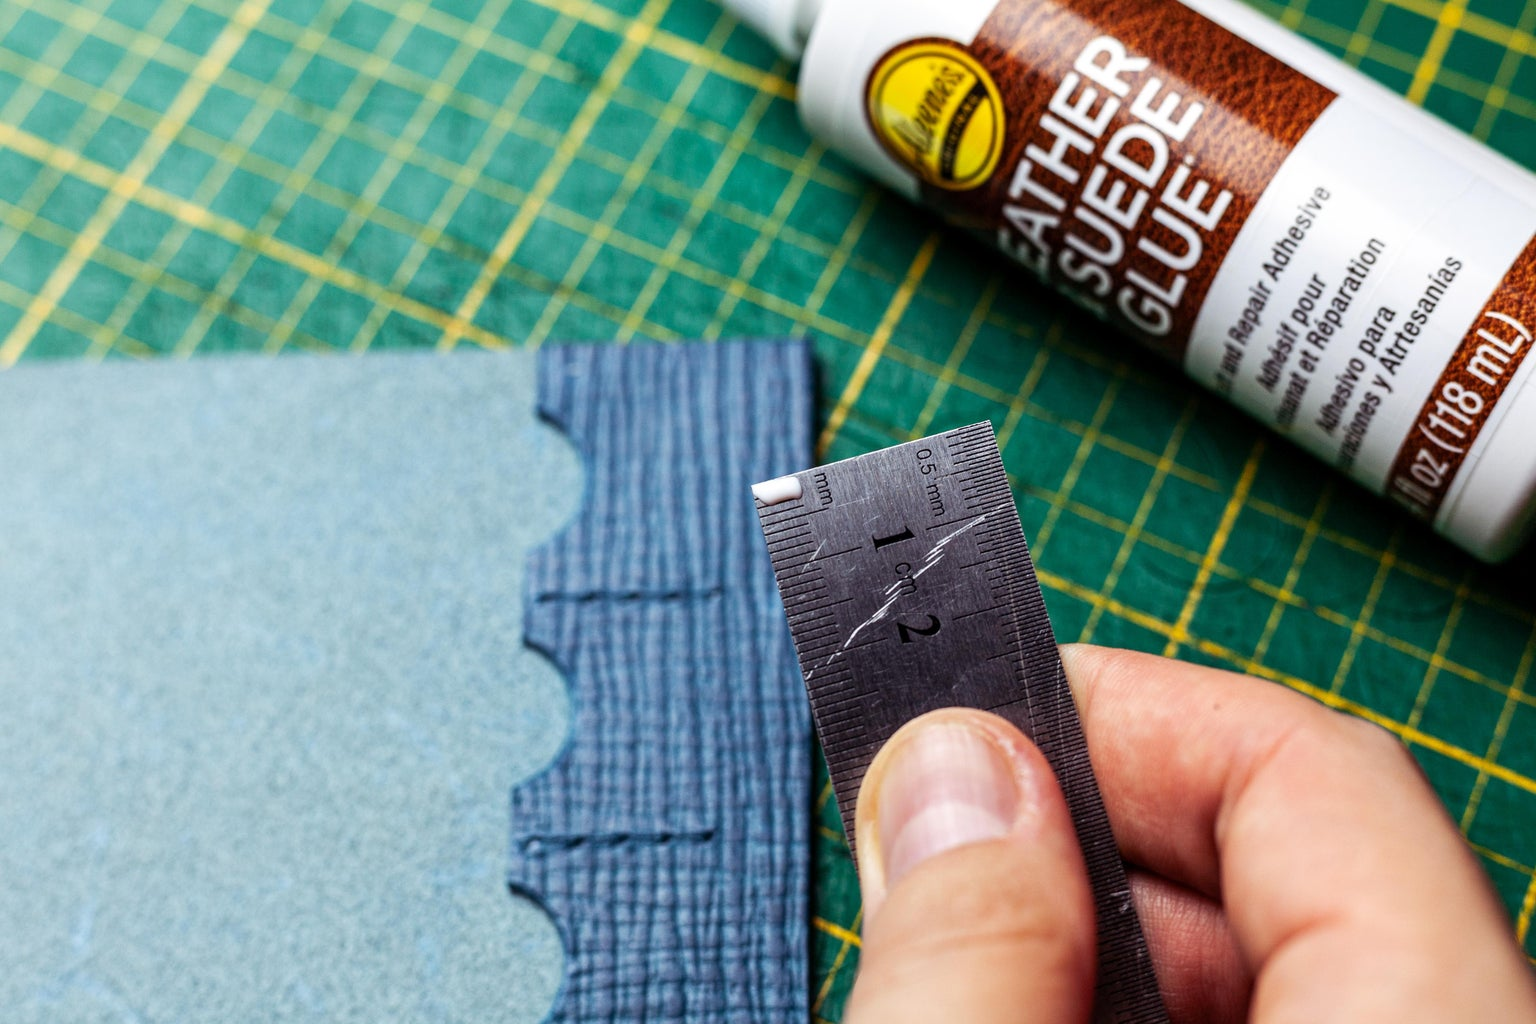 Glue the Leather Pieces Together